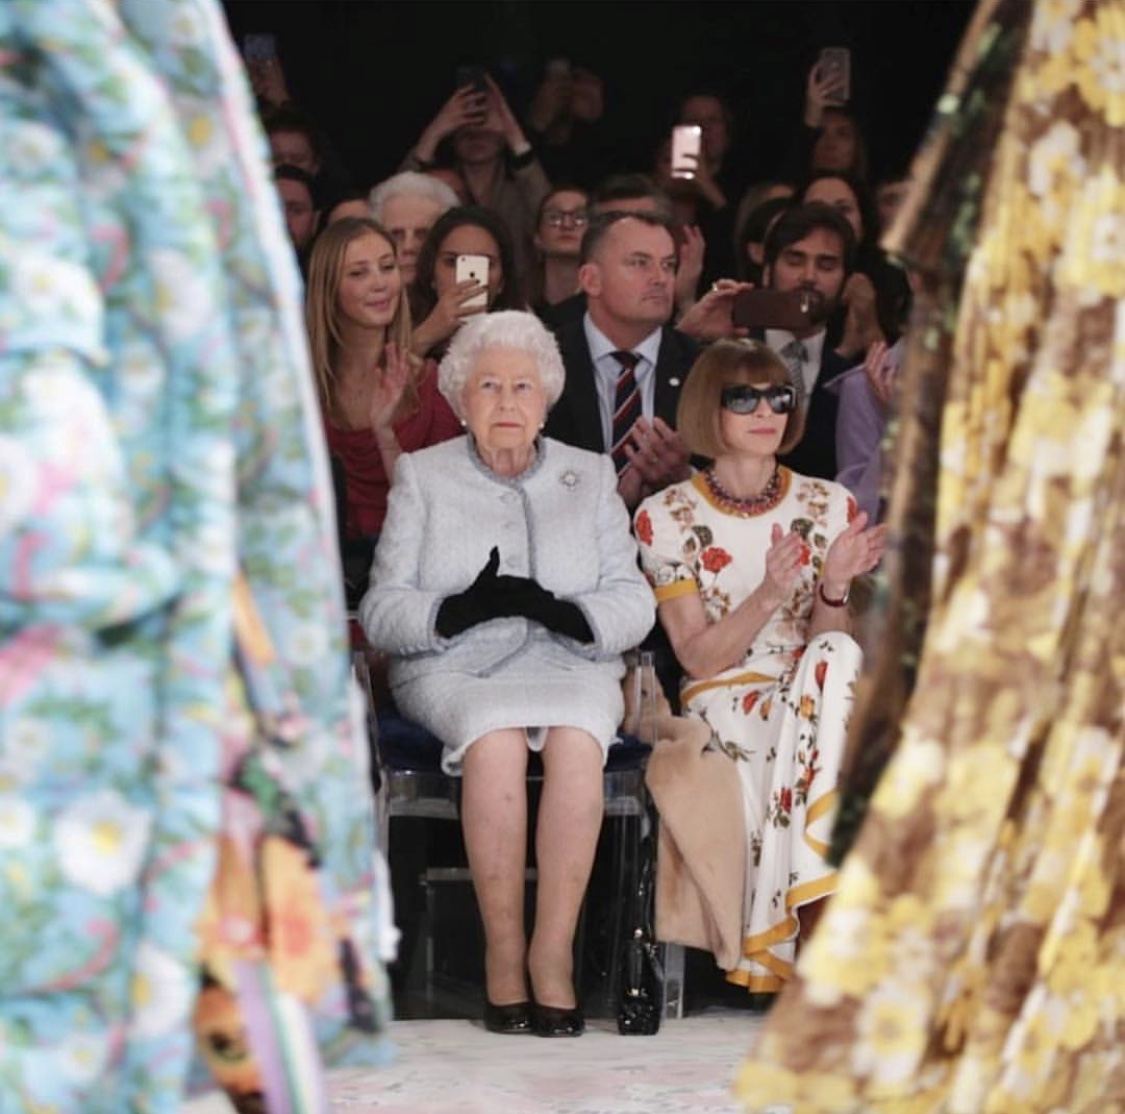 Why Was The Queen at London Fashion Week?